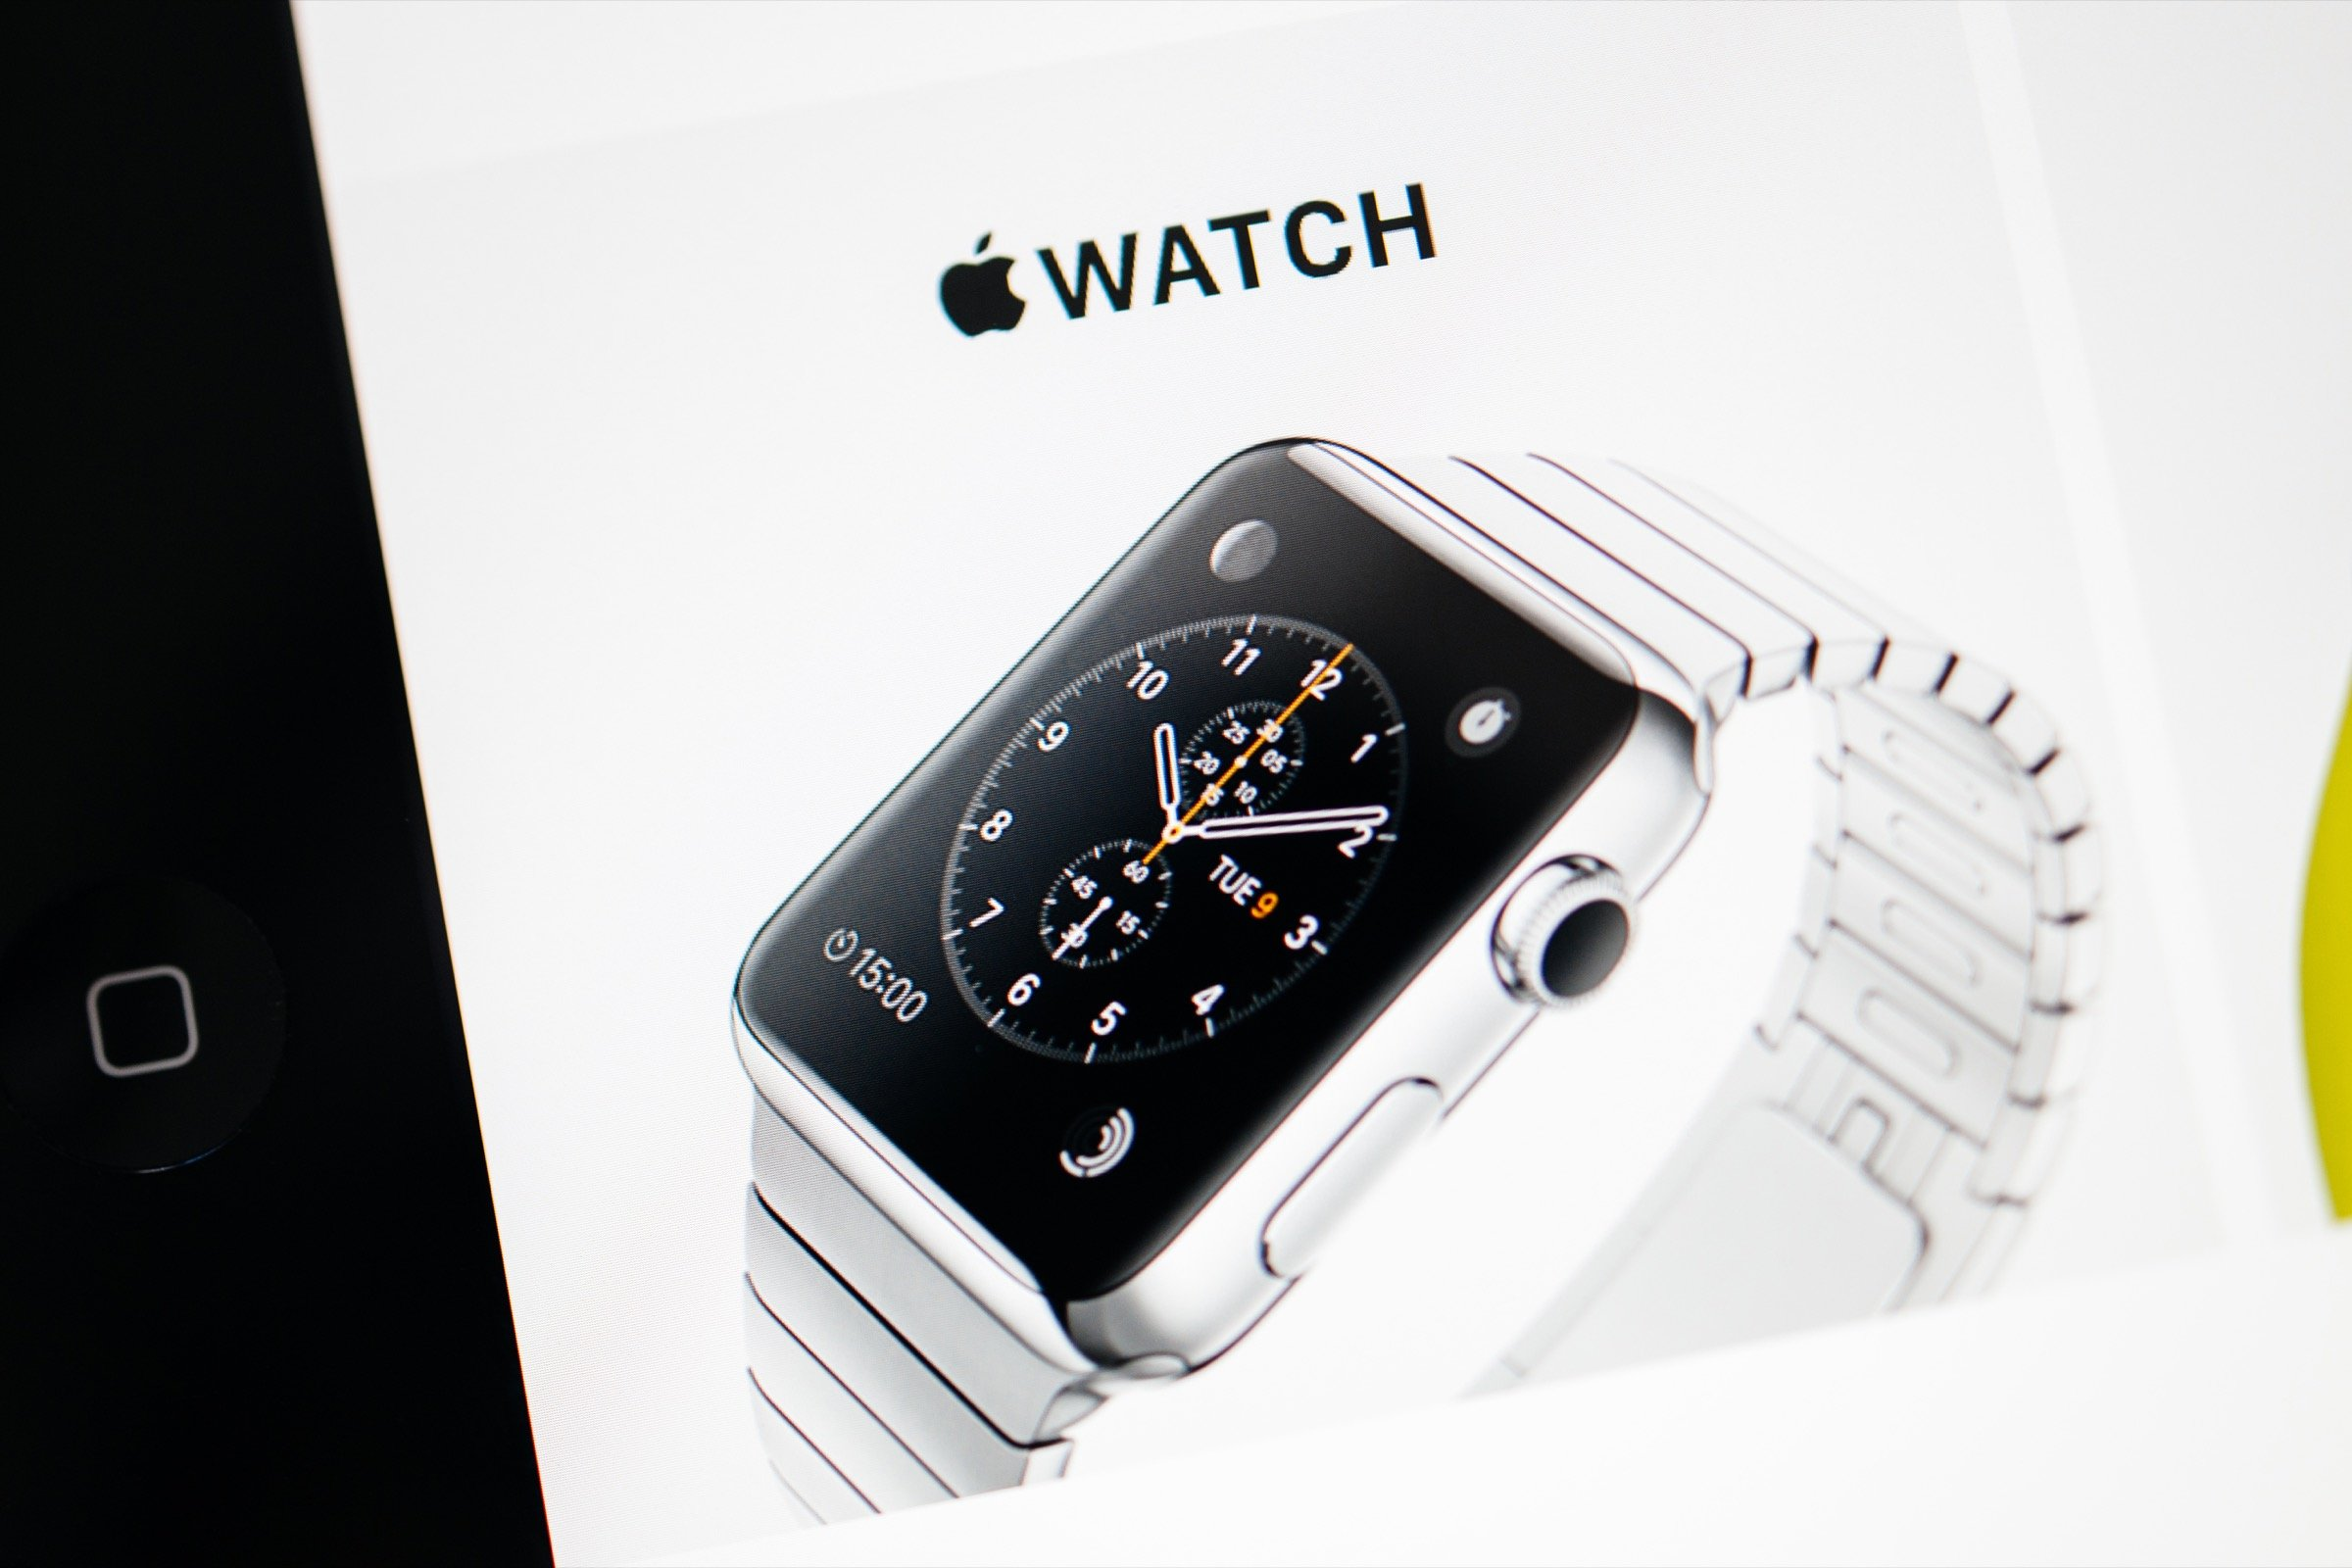 Here are the 10 Apple Watch apps you should download on launch day